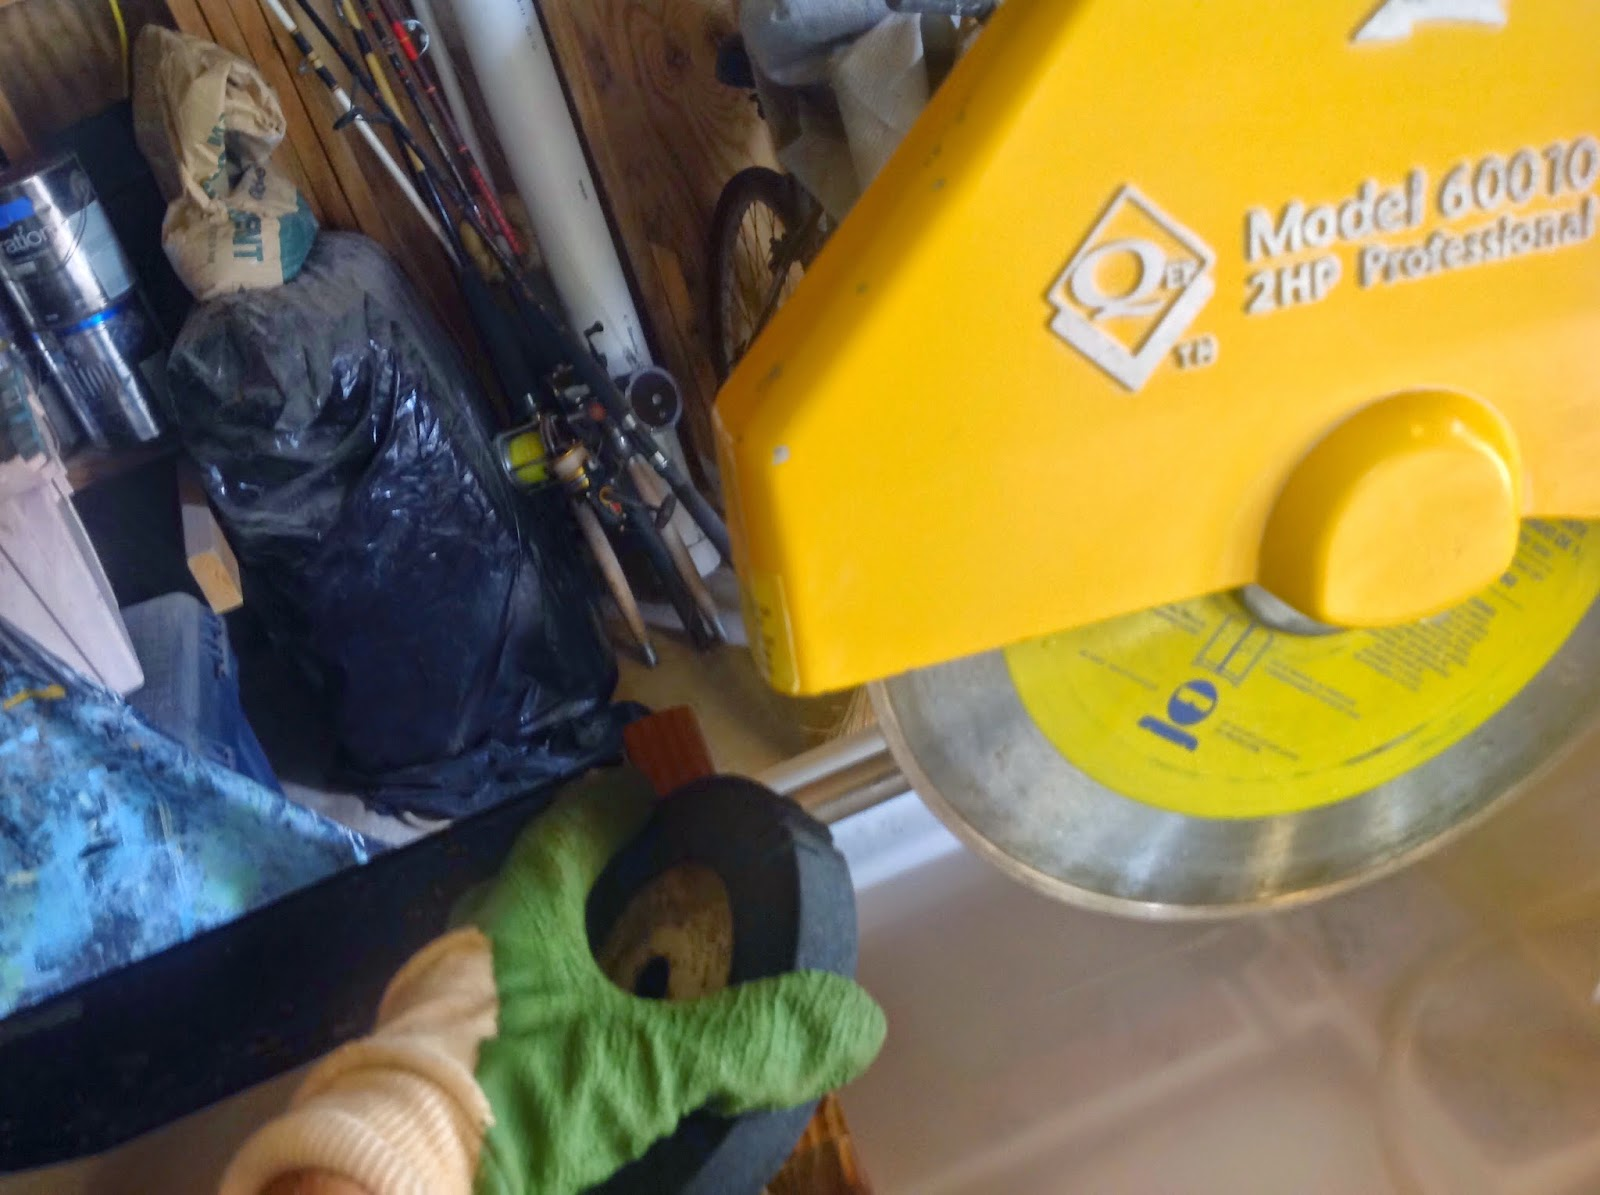 How to use a tile wet saw tips for those wet behind the ears nov keyboard keysfo Gallery